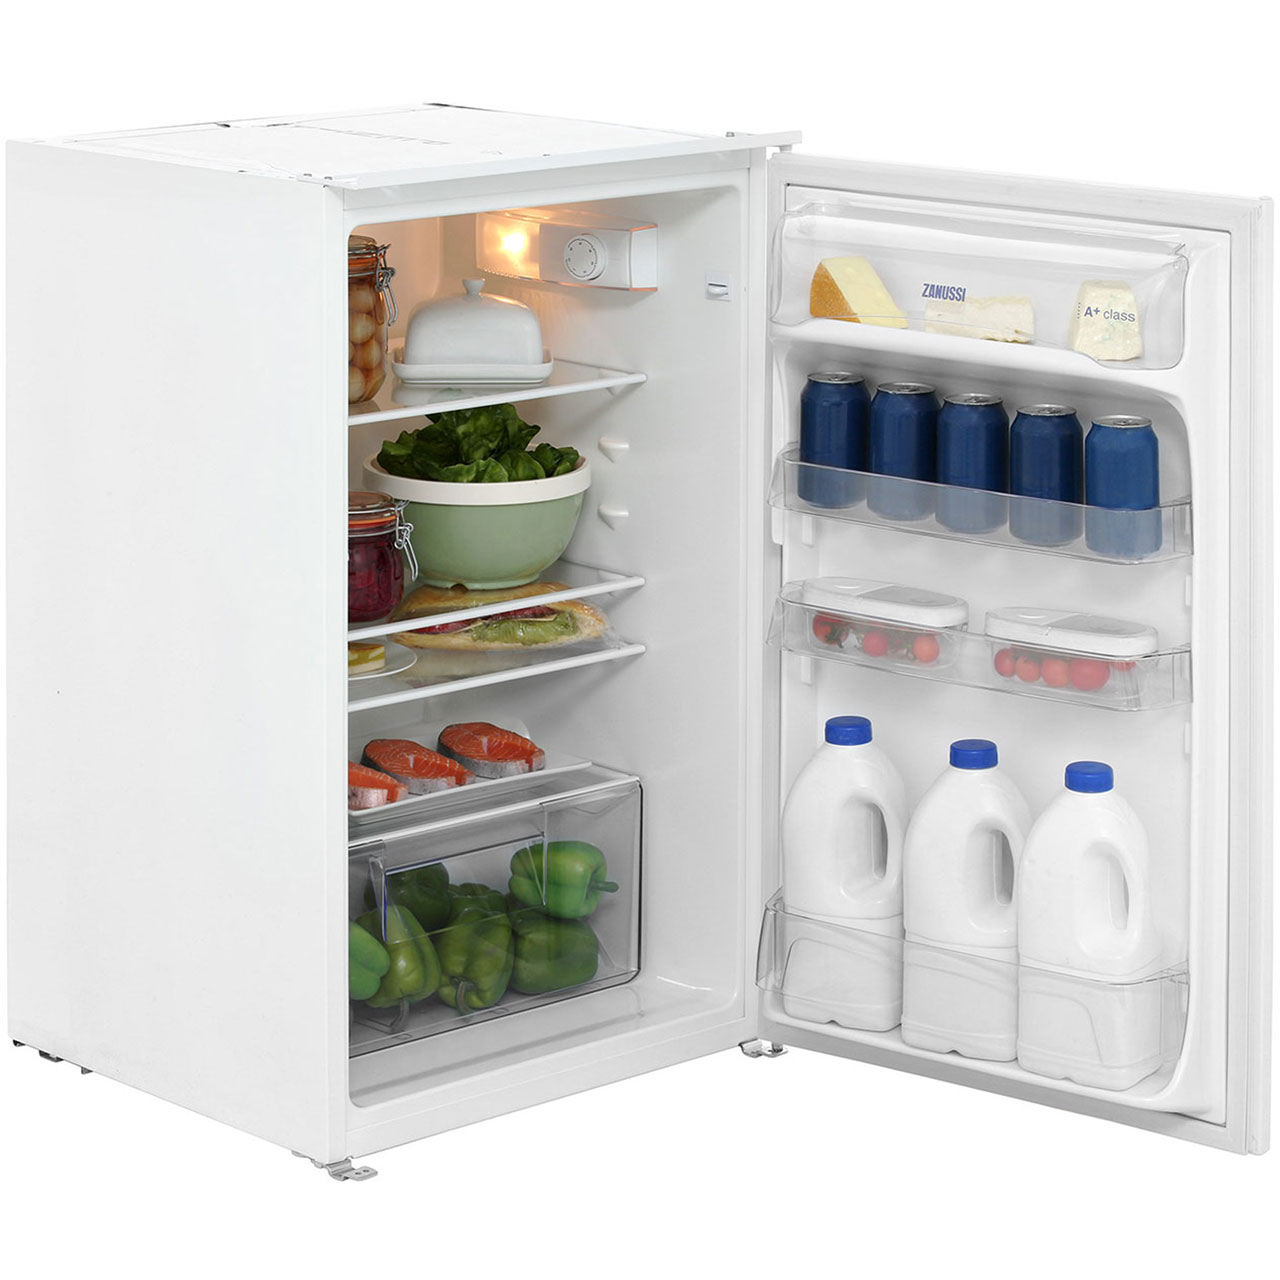 Zanussi Zrg16605wa Zanussi Larder Fridge Shop For Cheap Fridges And Save Online